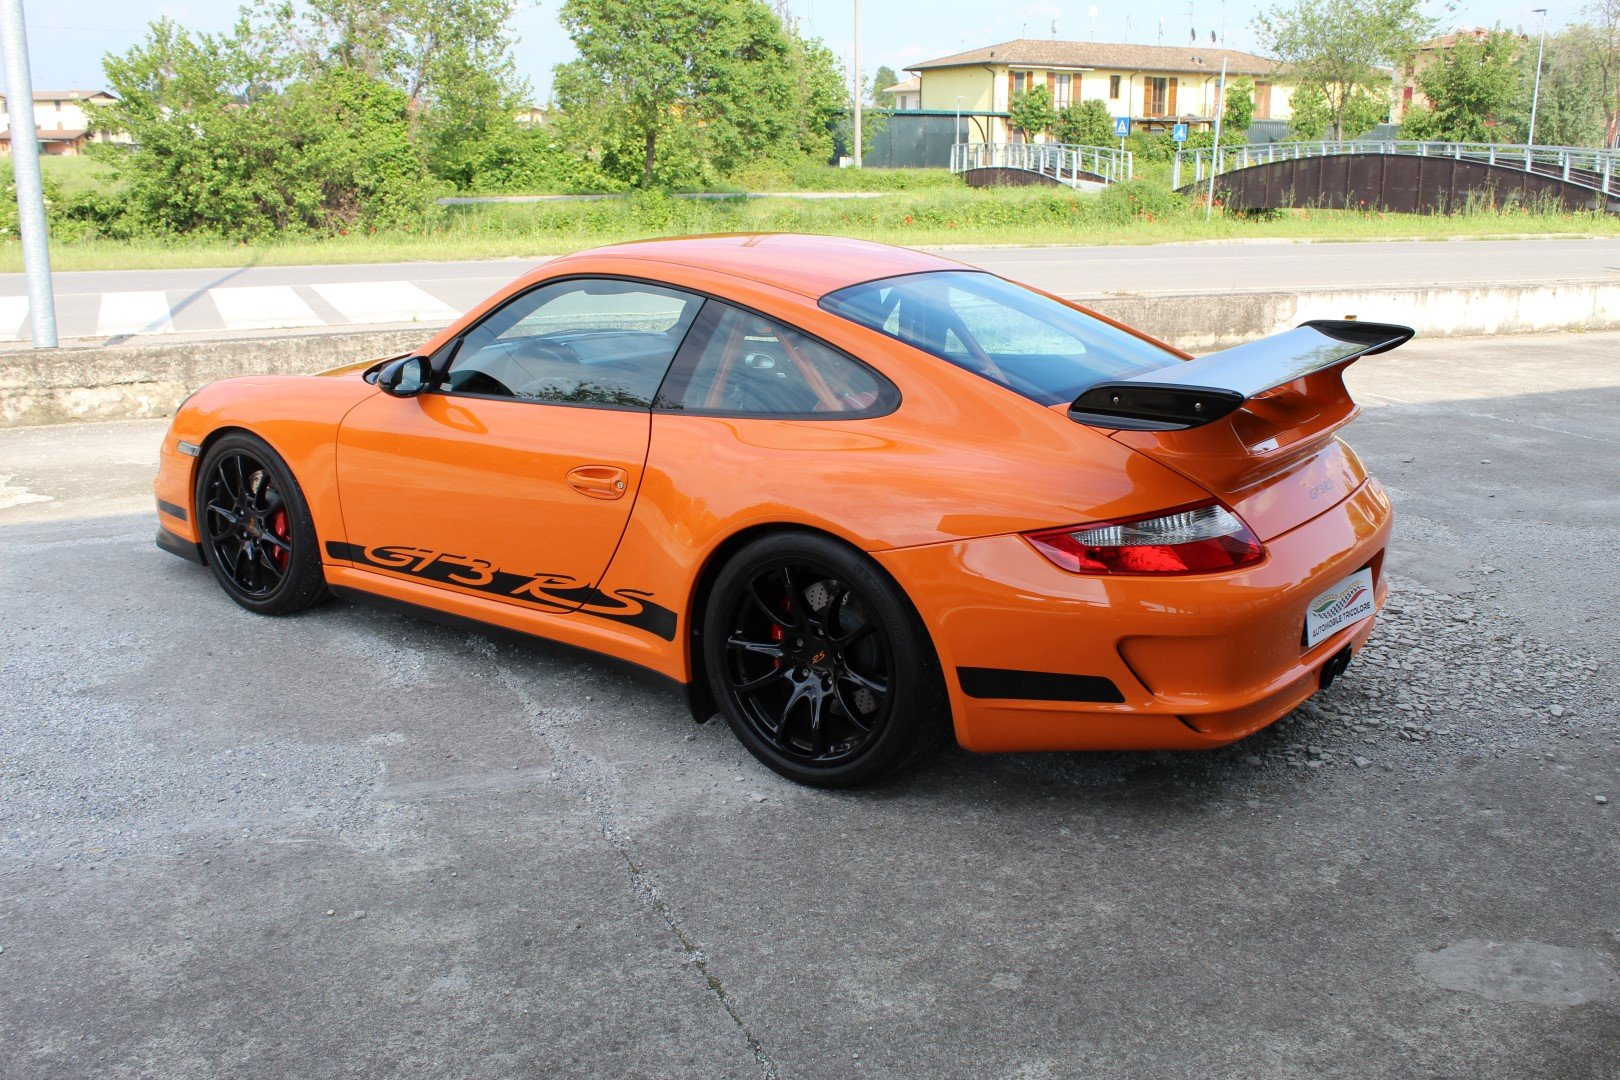 2007 Porsche 911 997 GT3 RS never repaint - first paint For Sale (picture 2 of 6)